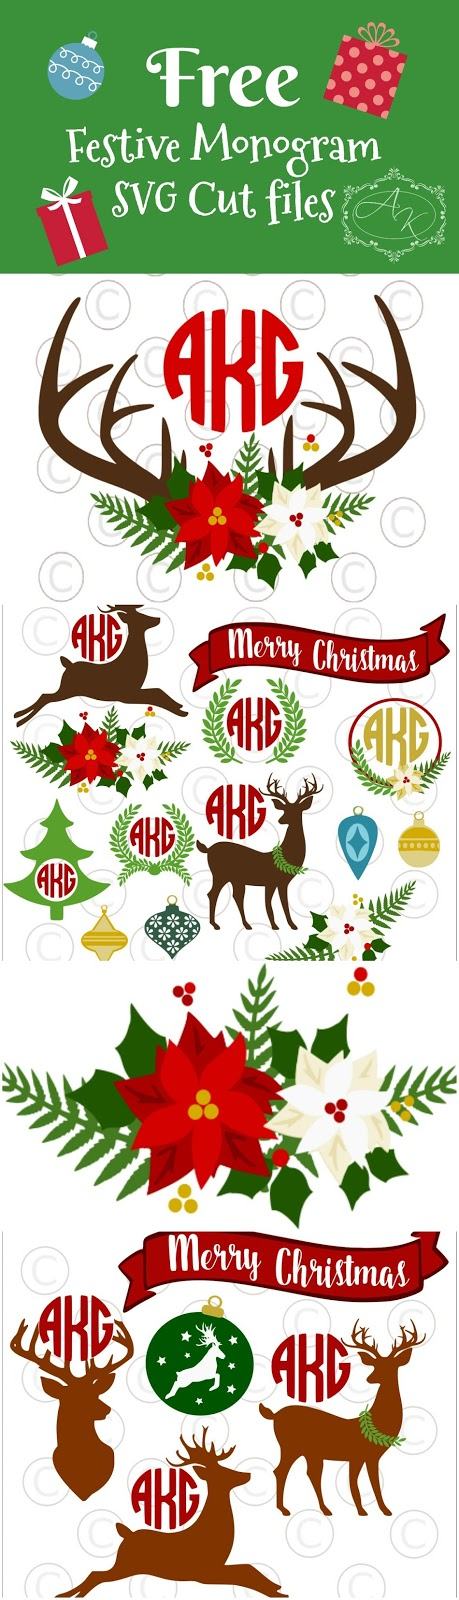 Free circle monogram SVG cut files. Christmas Svgs. Deer silhouette. Deer Antlers